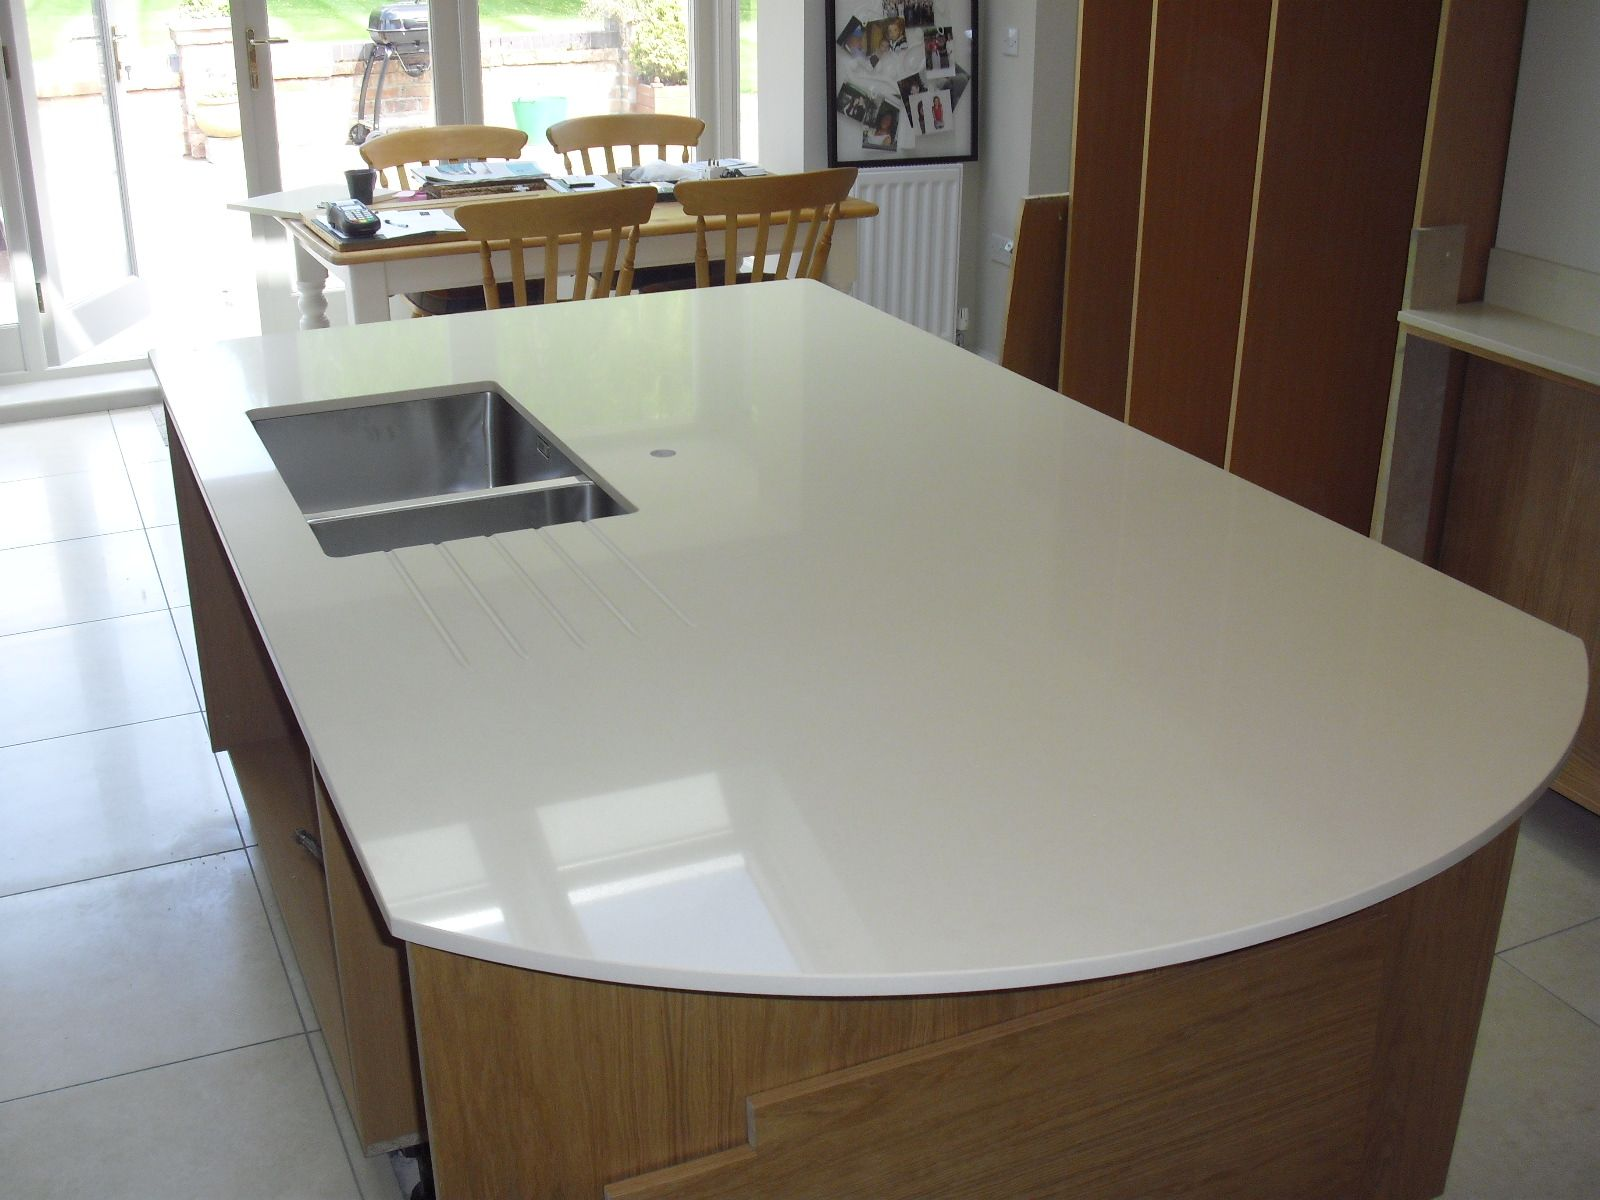 Curved Island worktop in Ivory quartz by Caesarstone